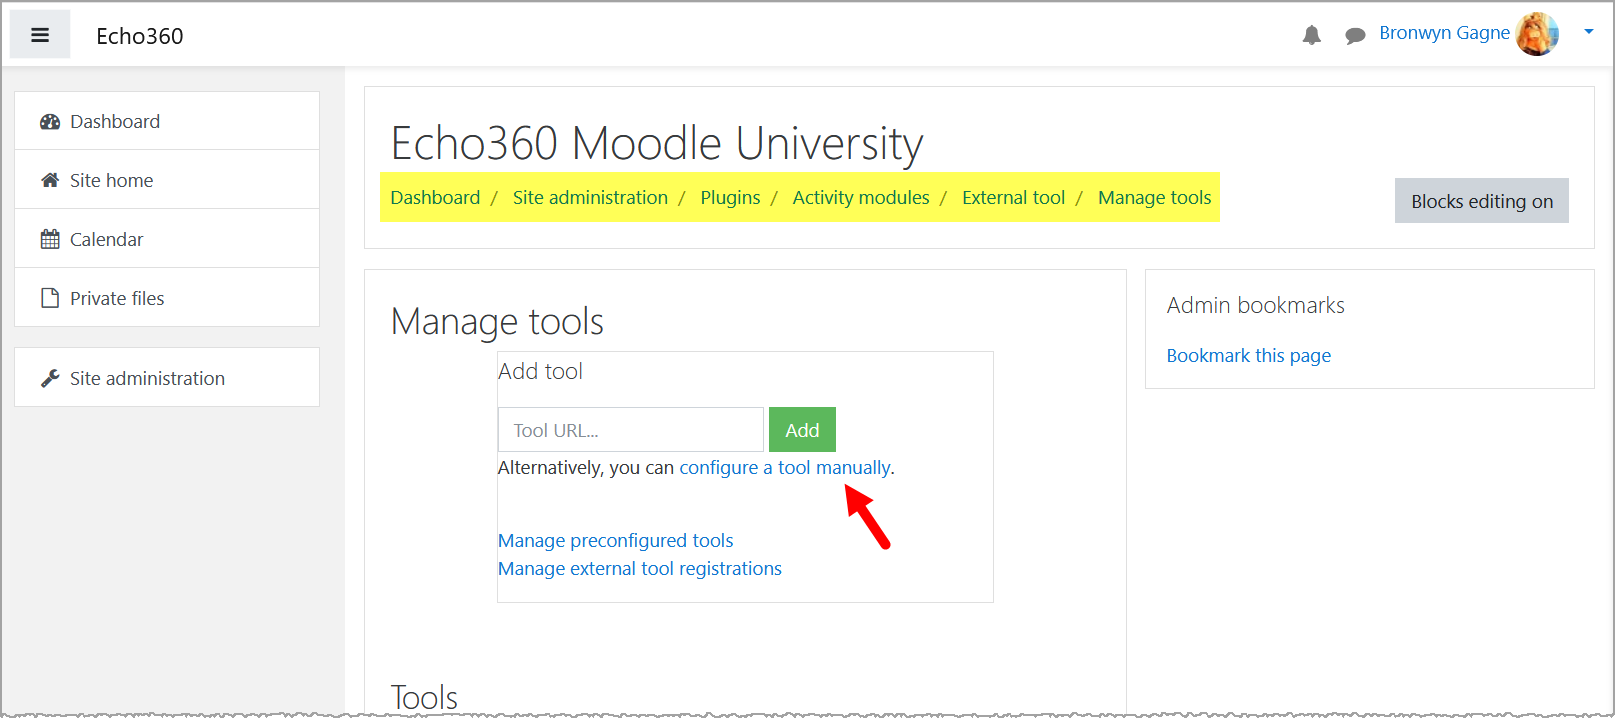 Moodle Manage Tools page with navigation breadcrumbs and Configure tool manually link identified for steps as described